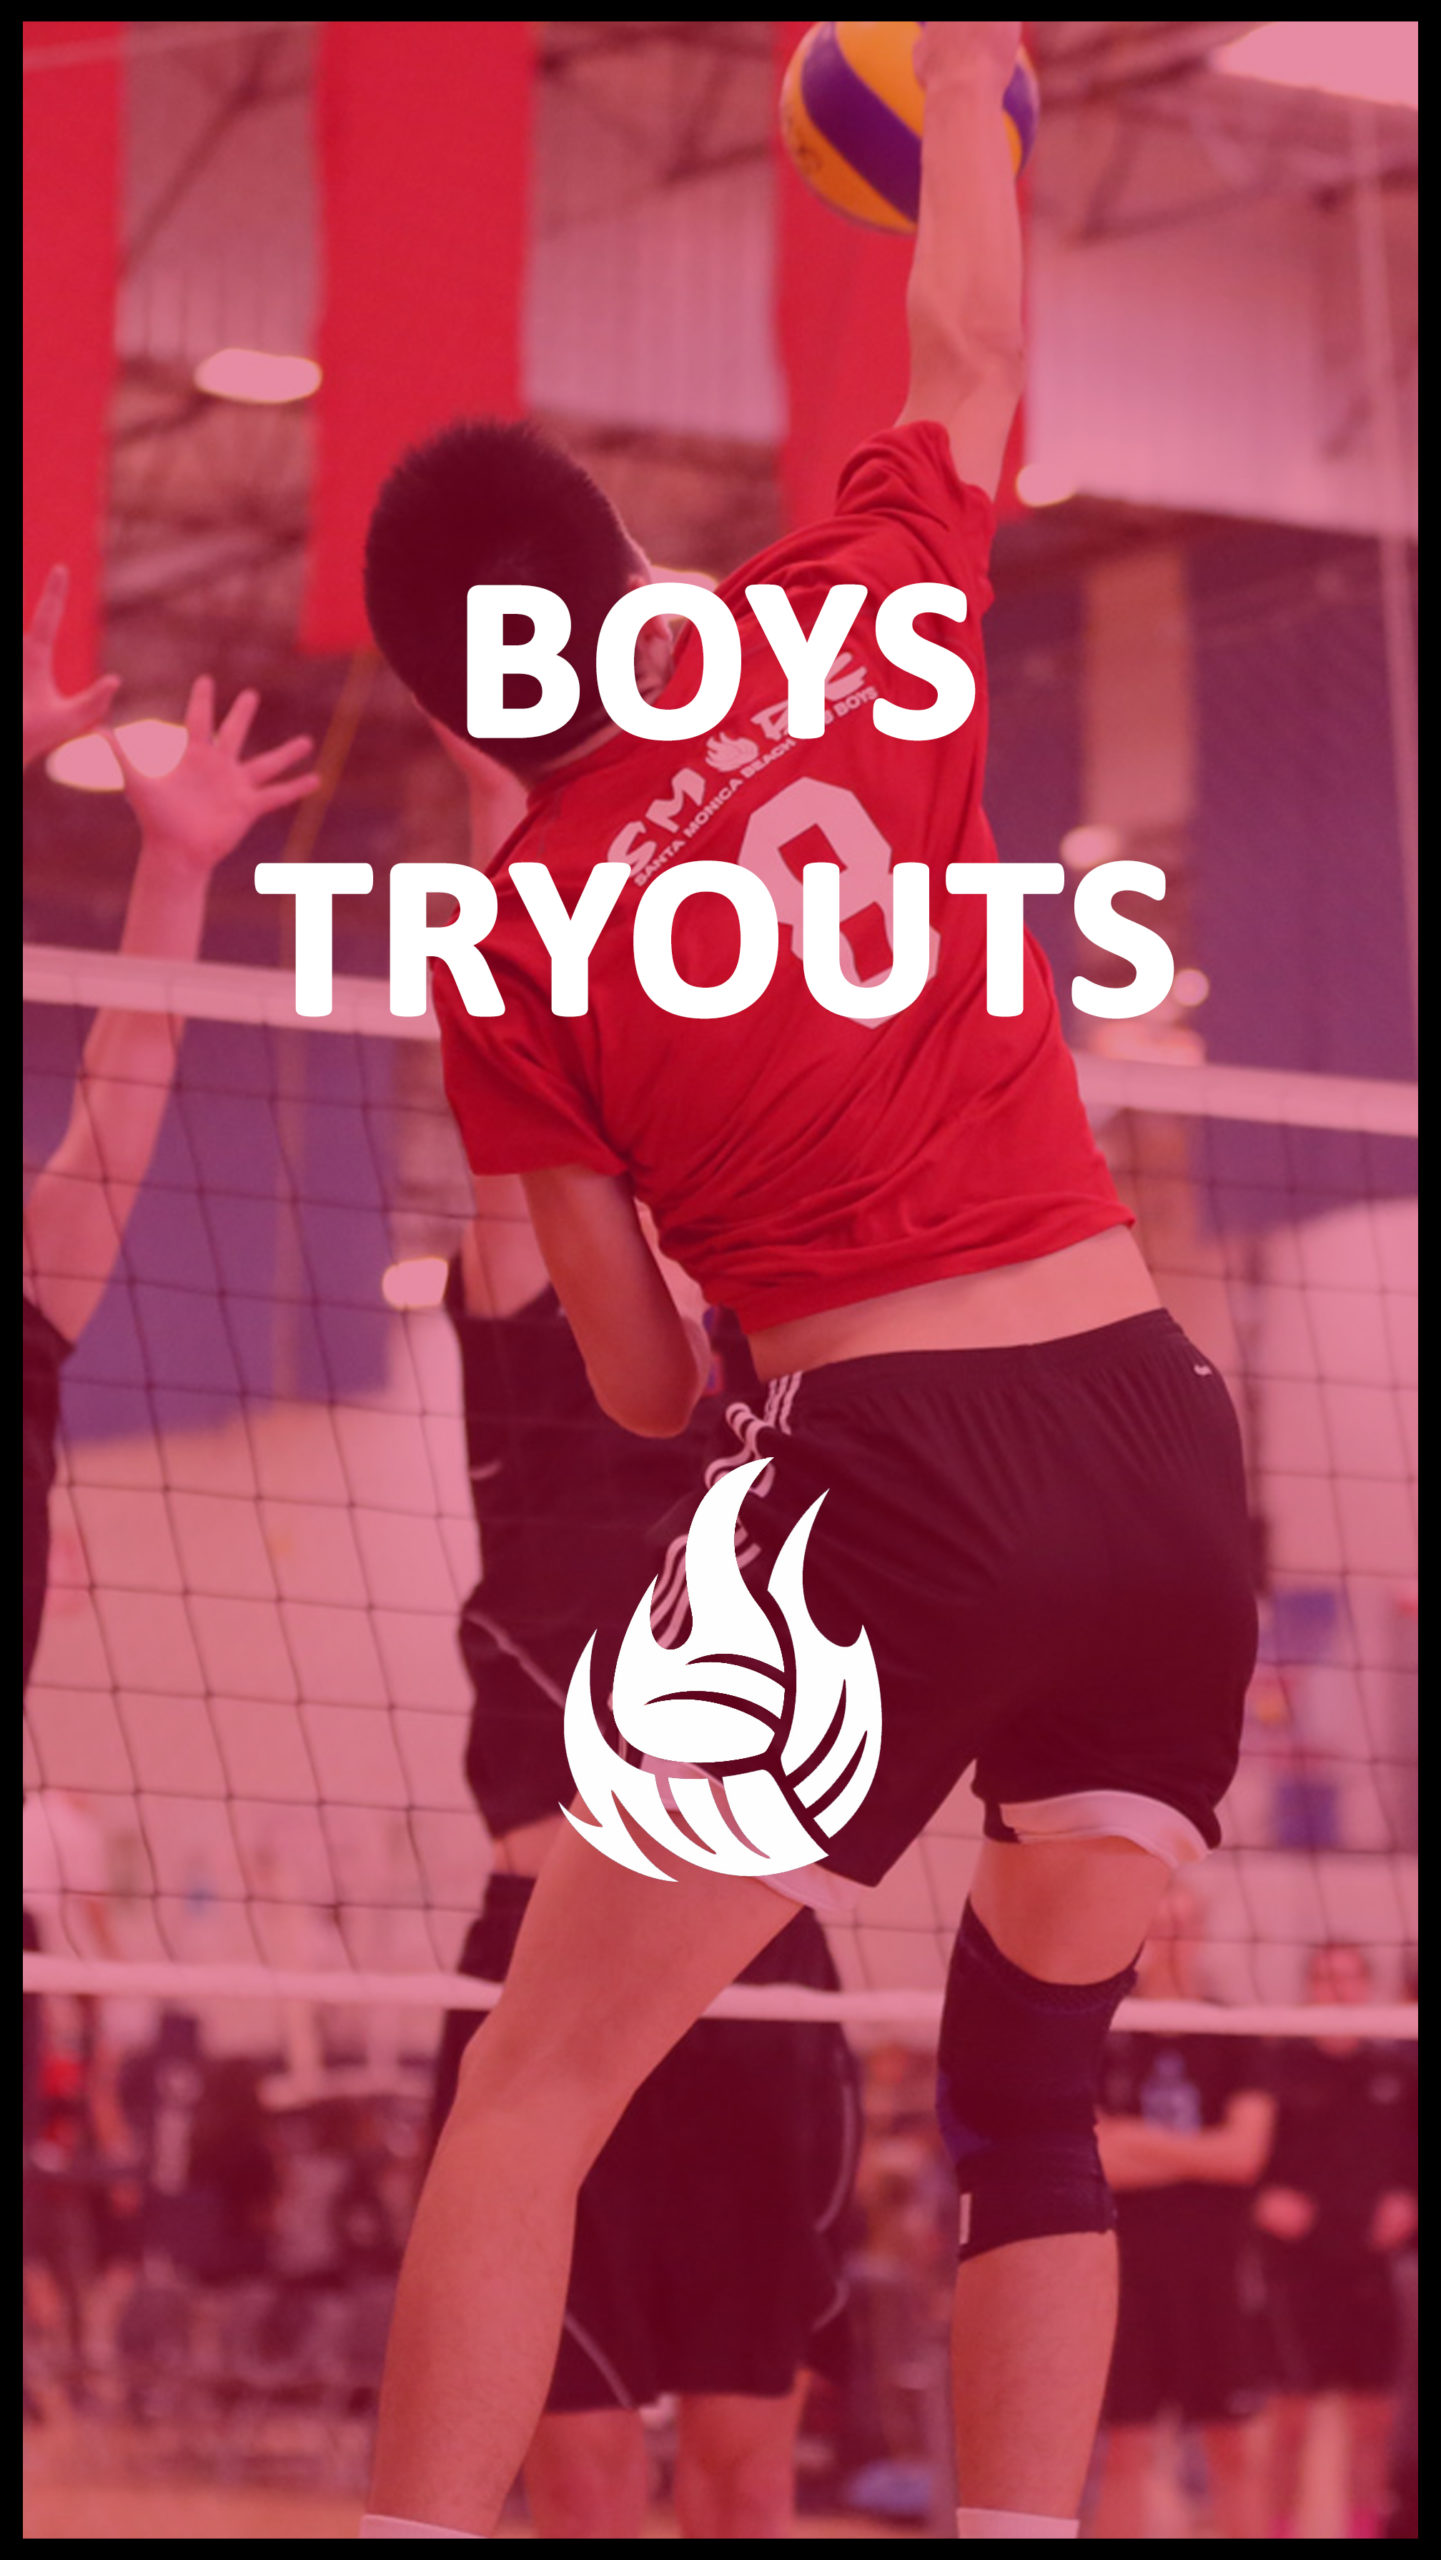 SportsEngine - Tryouts Page - Image Boxes Girls Boys